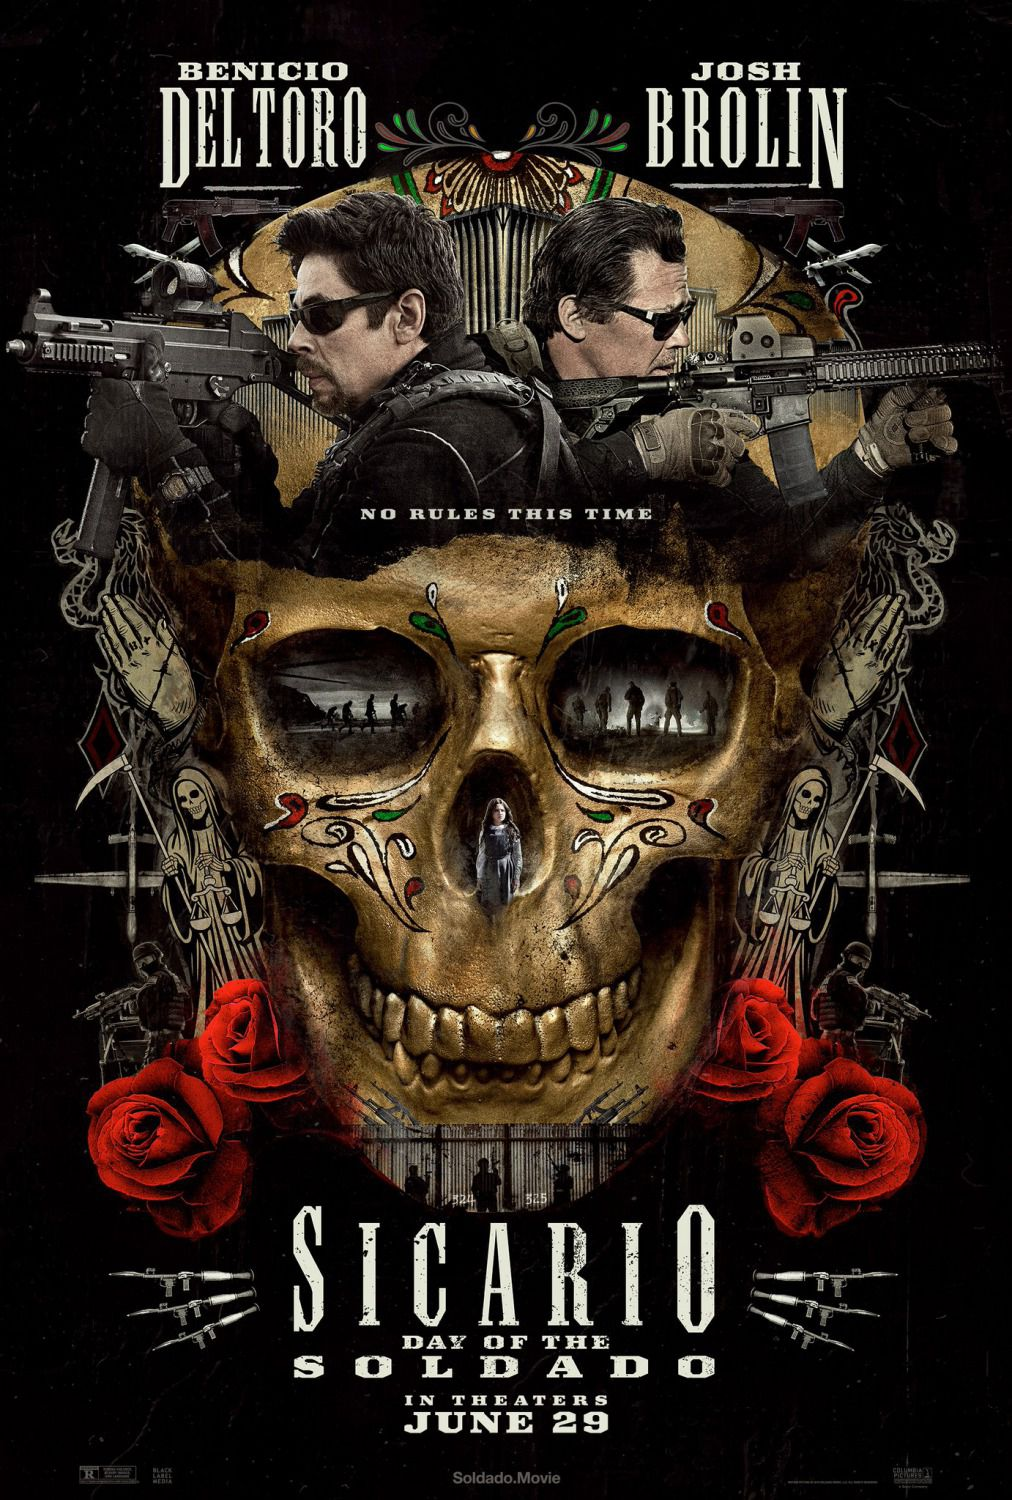 Sicario Day of the Soldado - no rules this time - Cast: Benicio Del Toro, Josh Brolin, Catherine Keener, Christopher Heyerdahl - film poster 2018